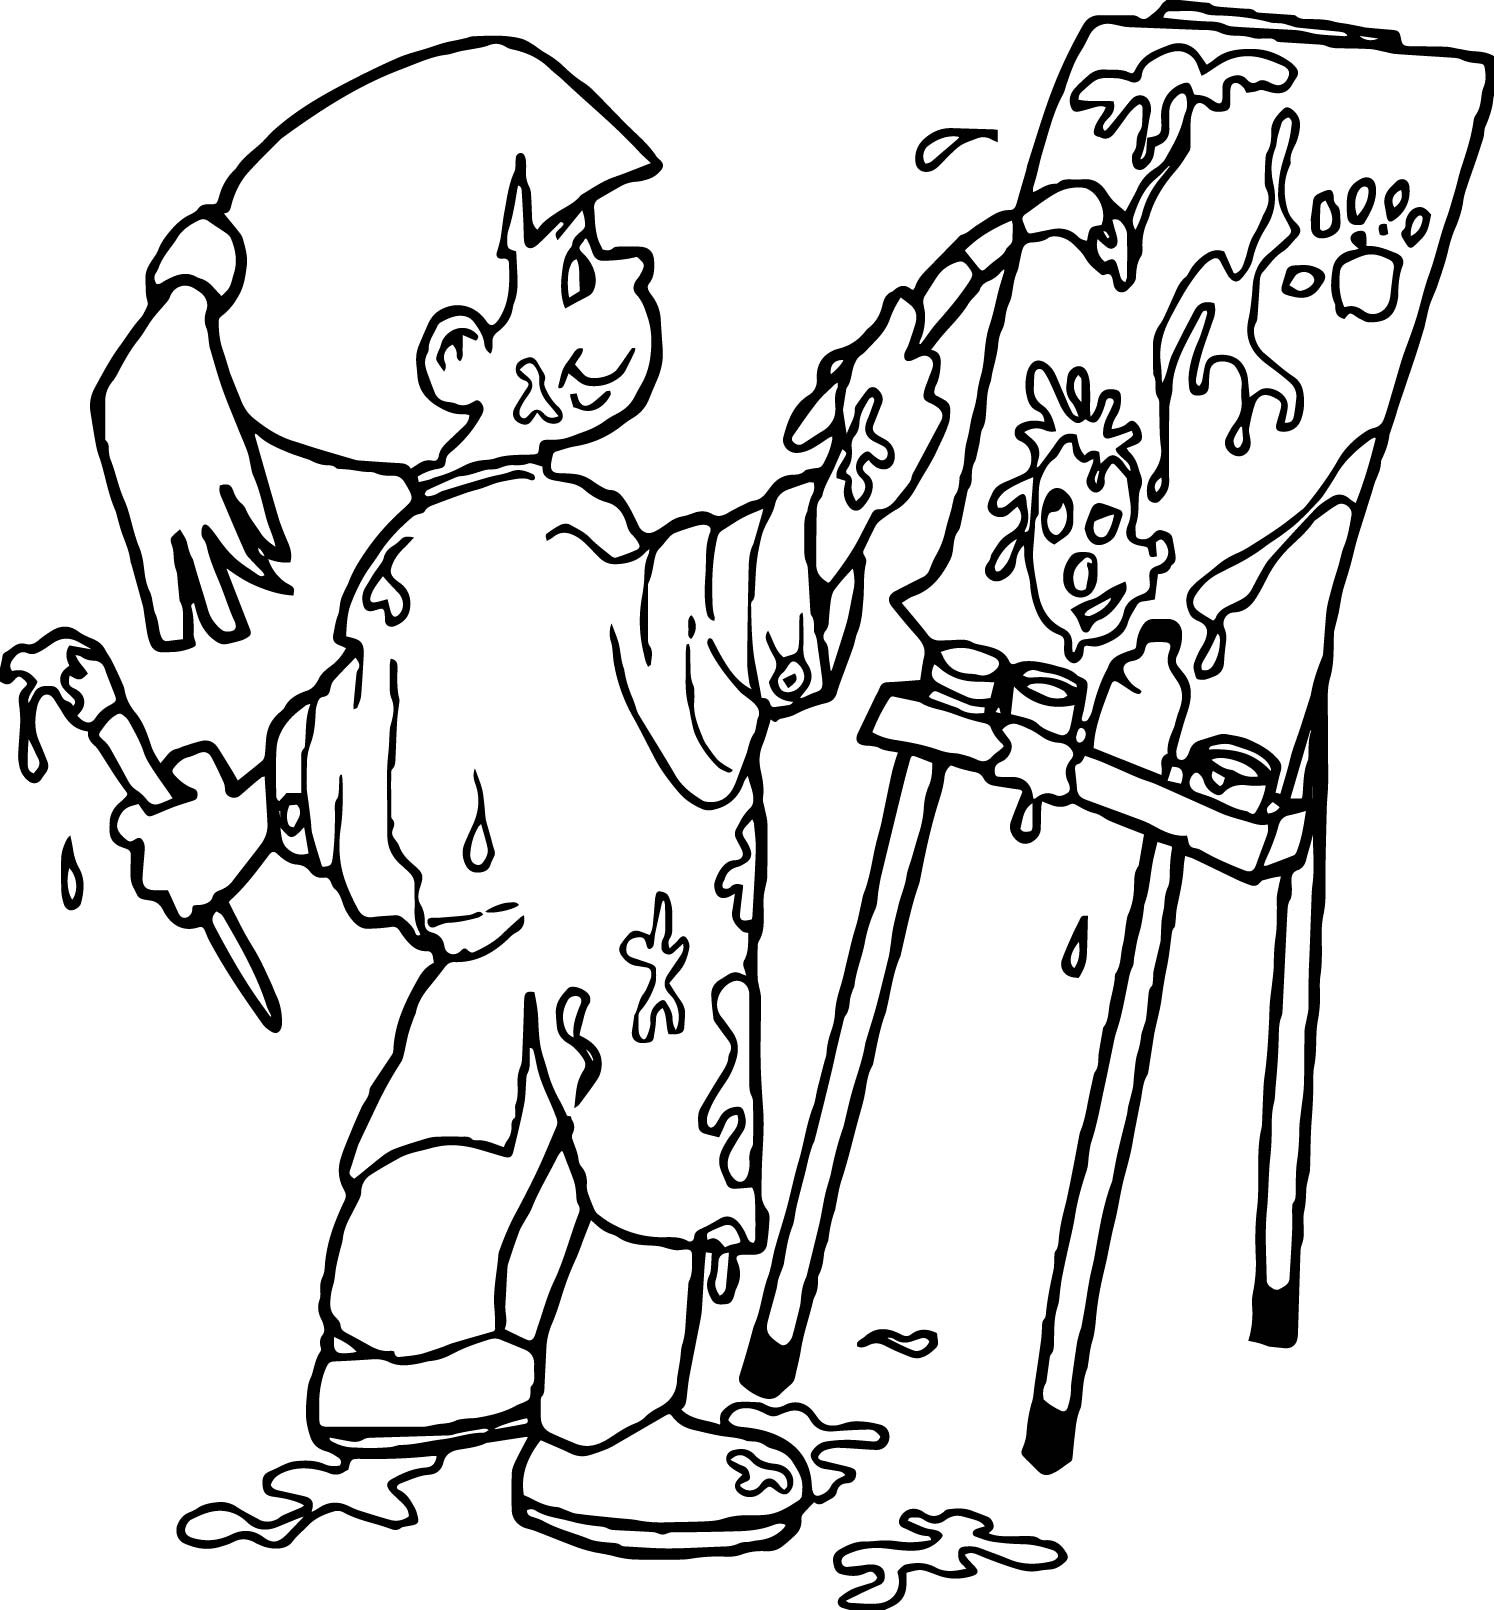 1494x1610 School Pen Coloring Page Best Of Art Class Girl Coloring Page